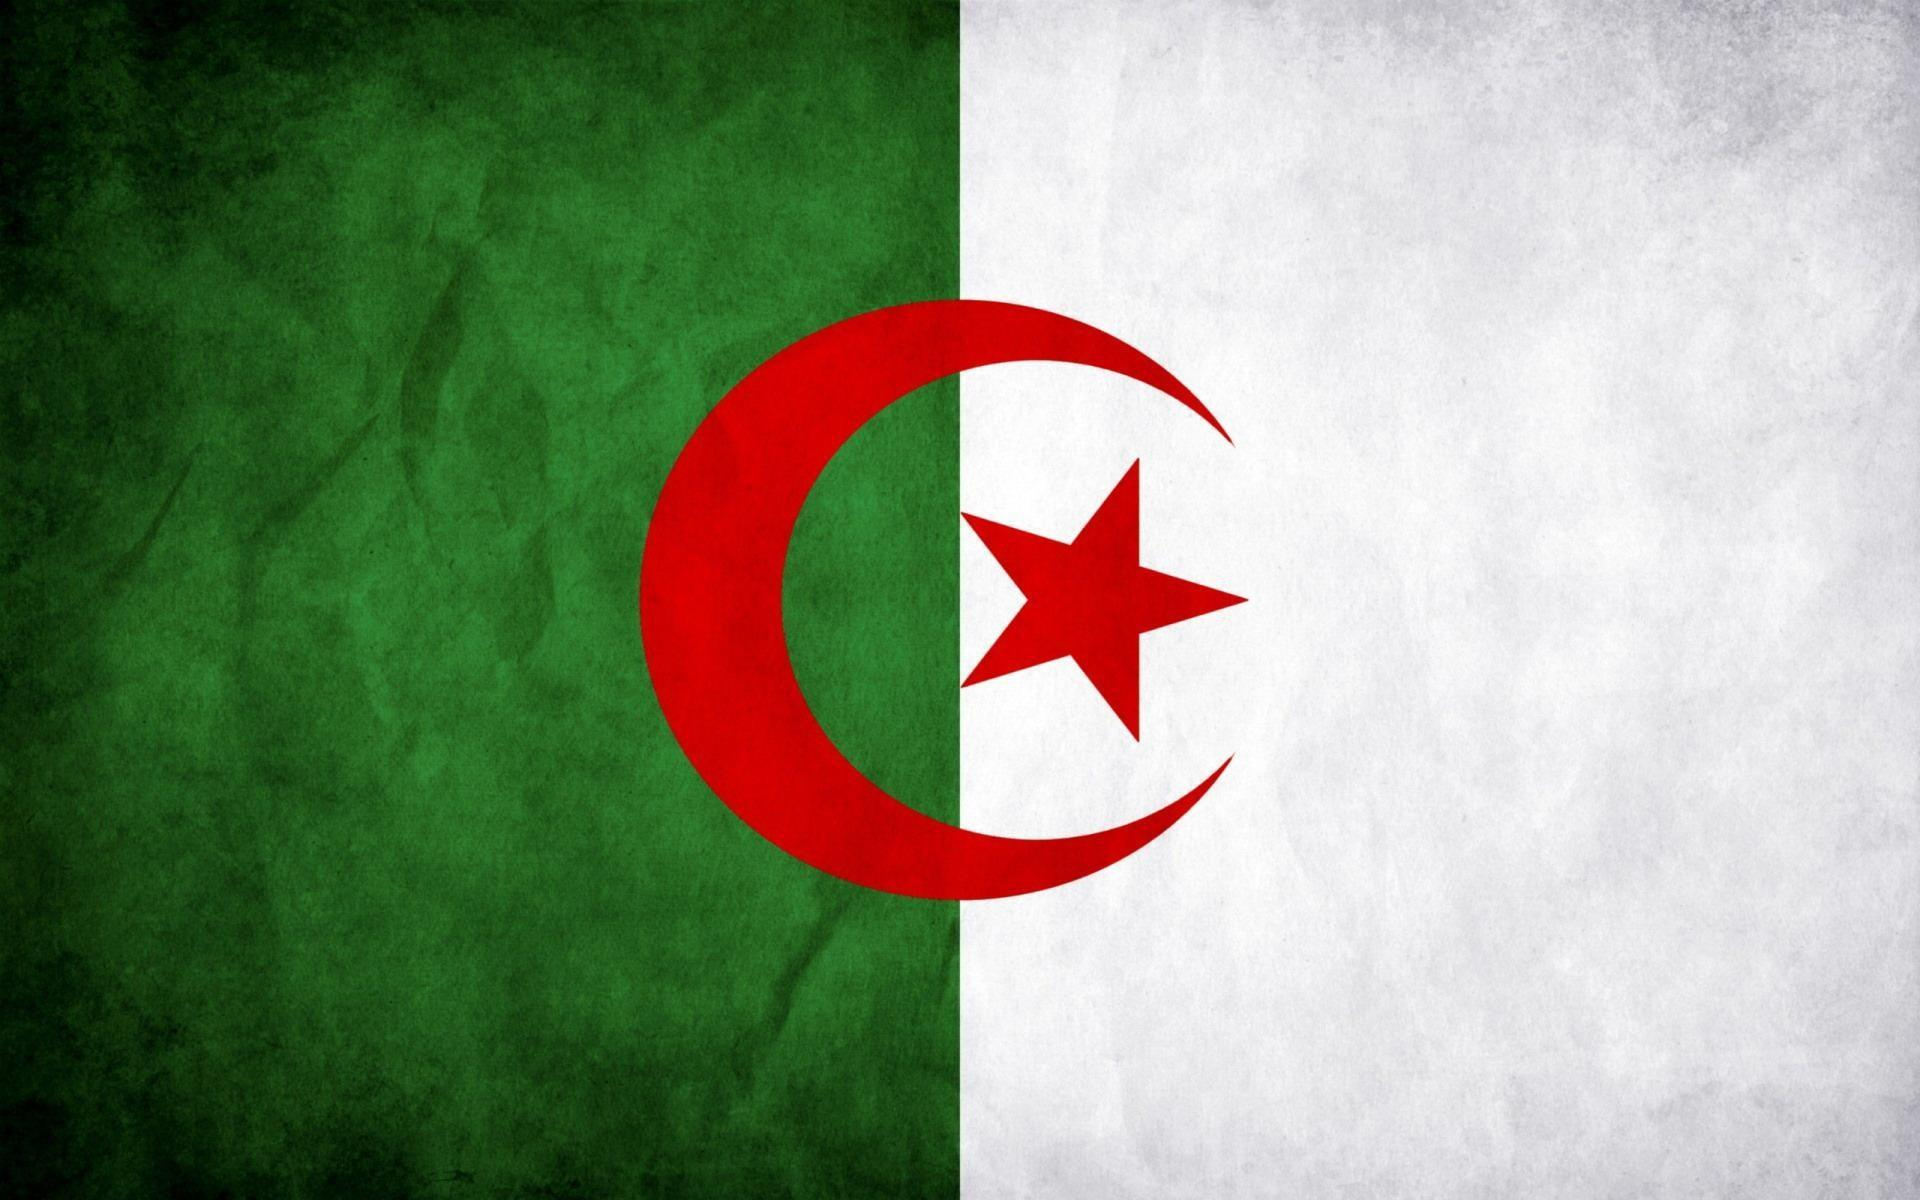 Algeria Flag Wallpapers for Android   APK Download 1920x1200